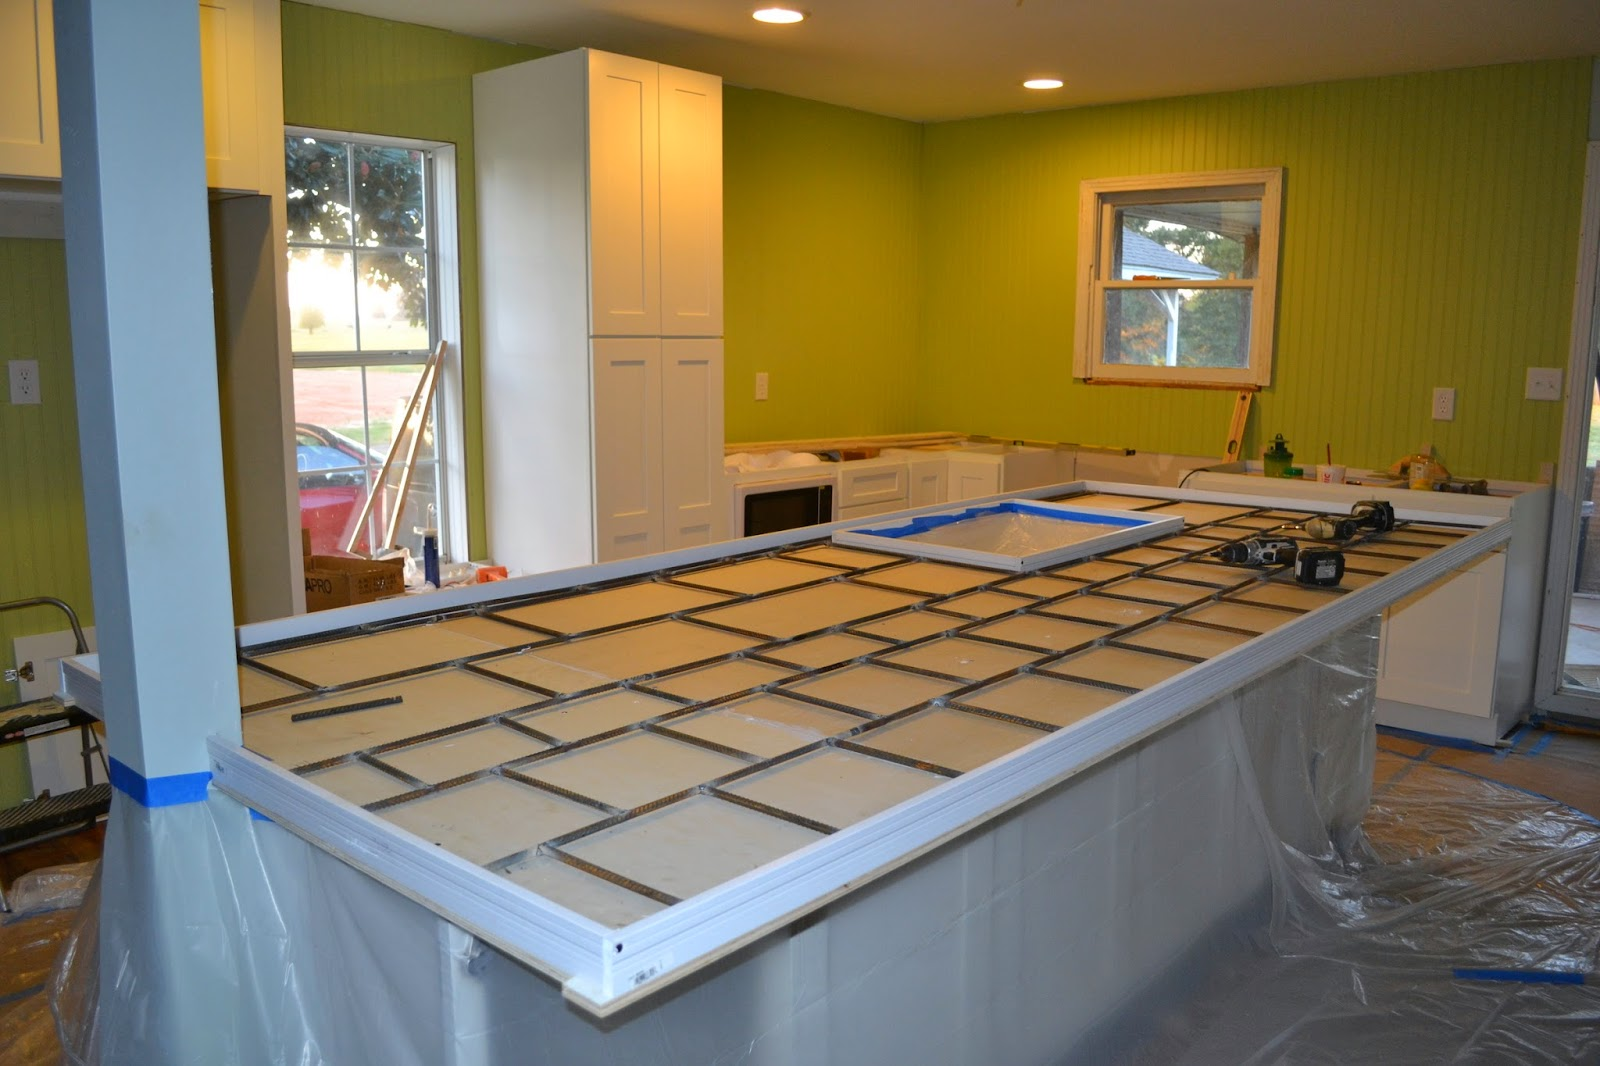 My Stuff: Kitchen Reno X, Concrete Countertop